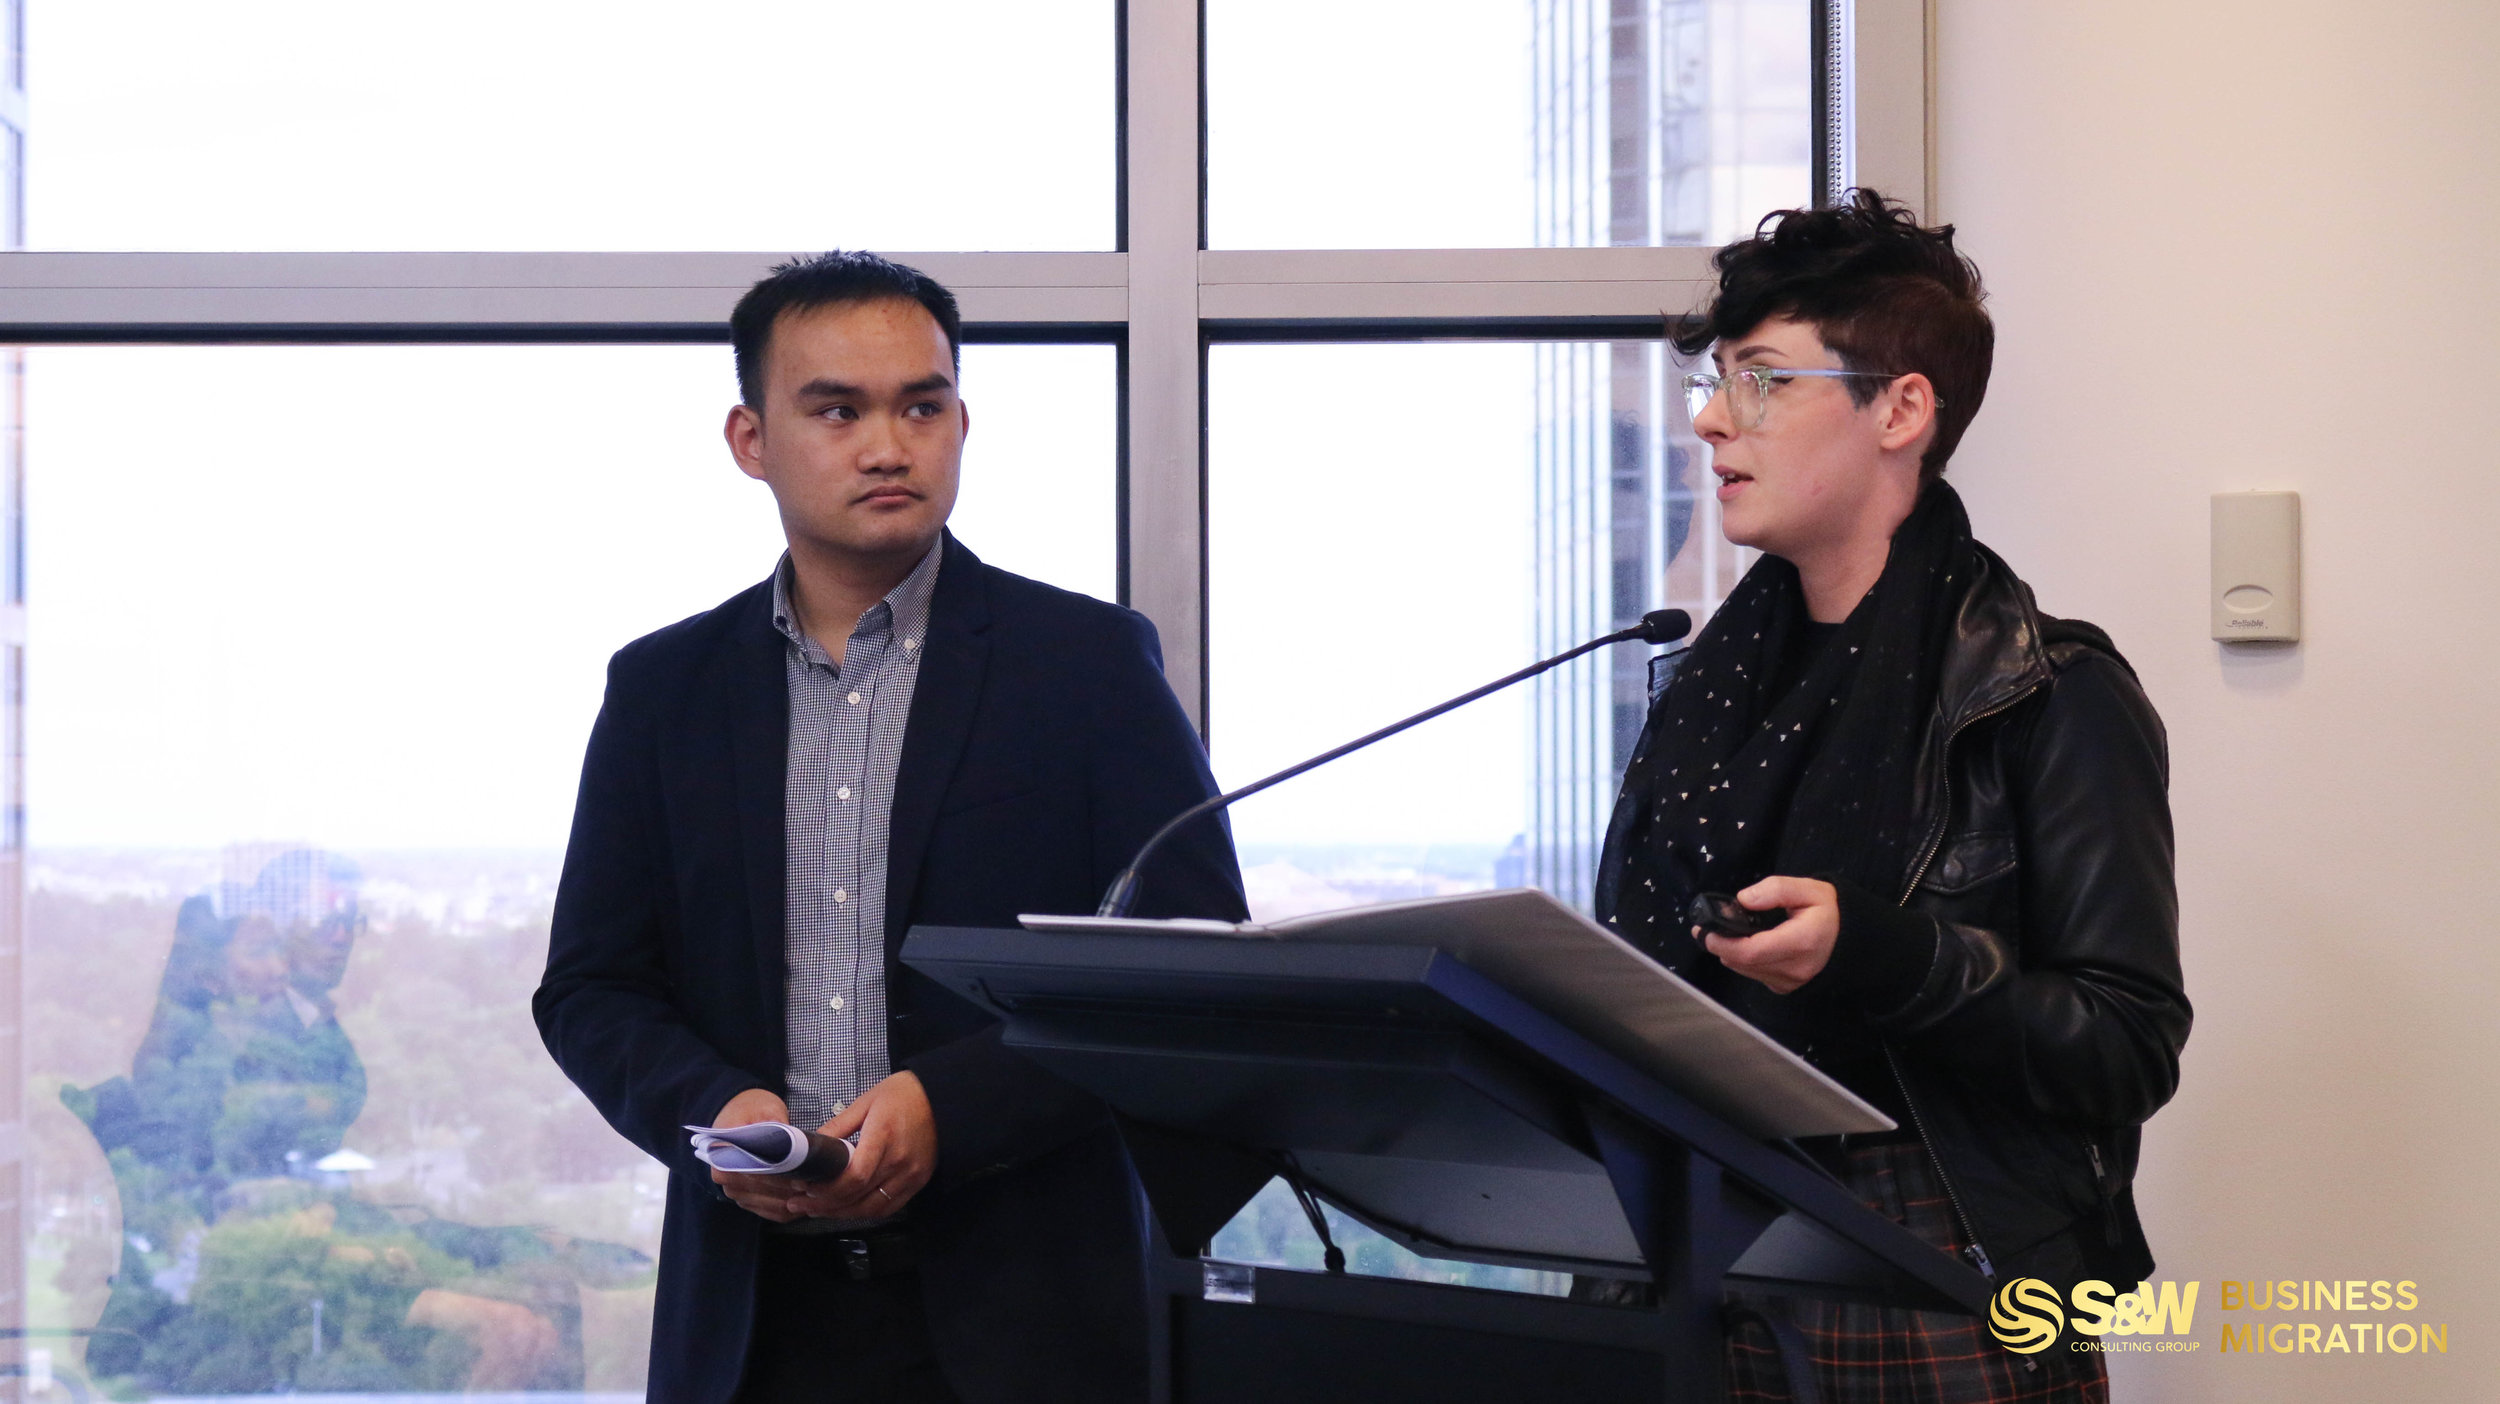 Brittany WATT (right) Project Support Officer, Skilled and Business Migration Program, Global Victoria & Tho NGUYEN (left) Registered Migration Agent, S&W Consulting Group